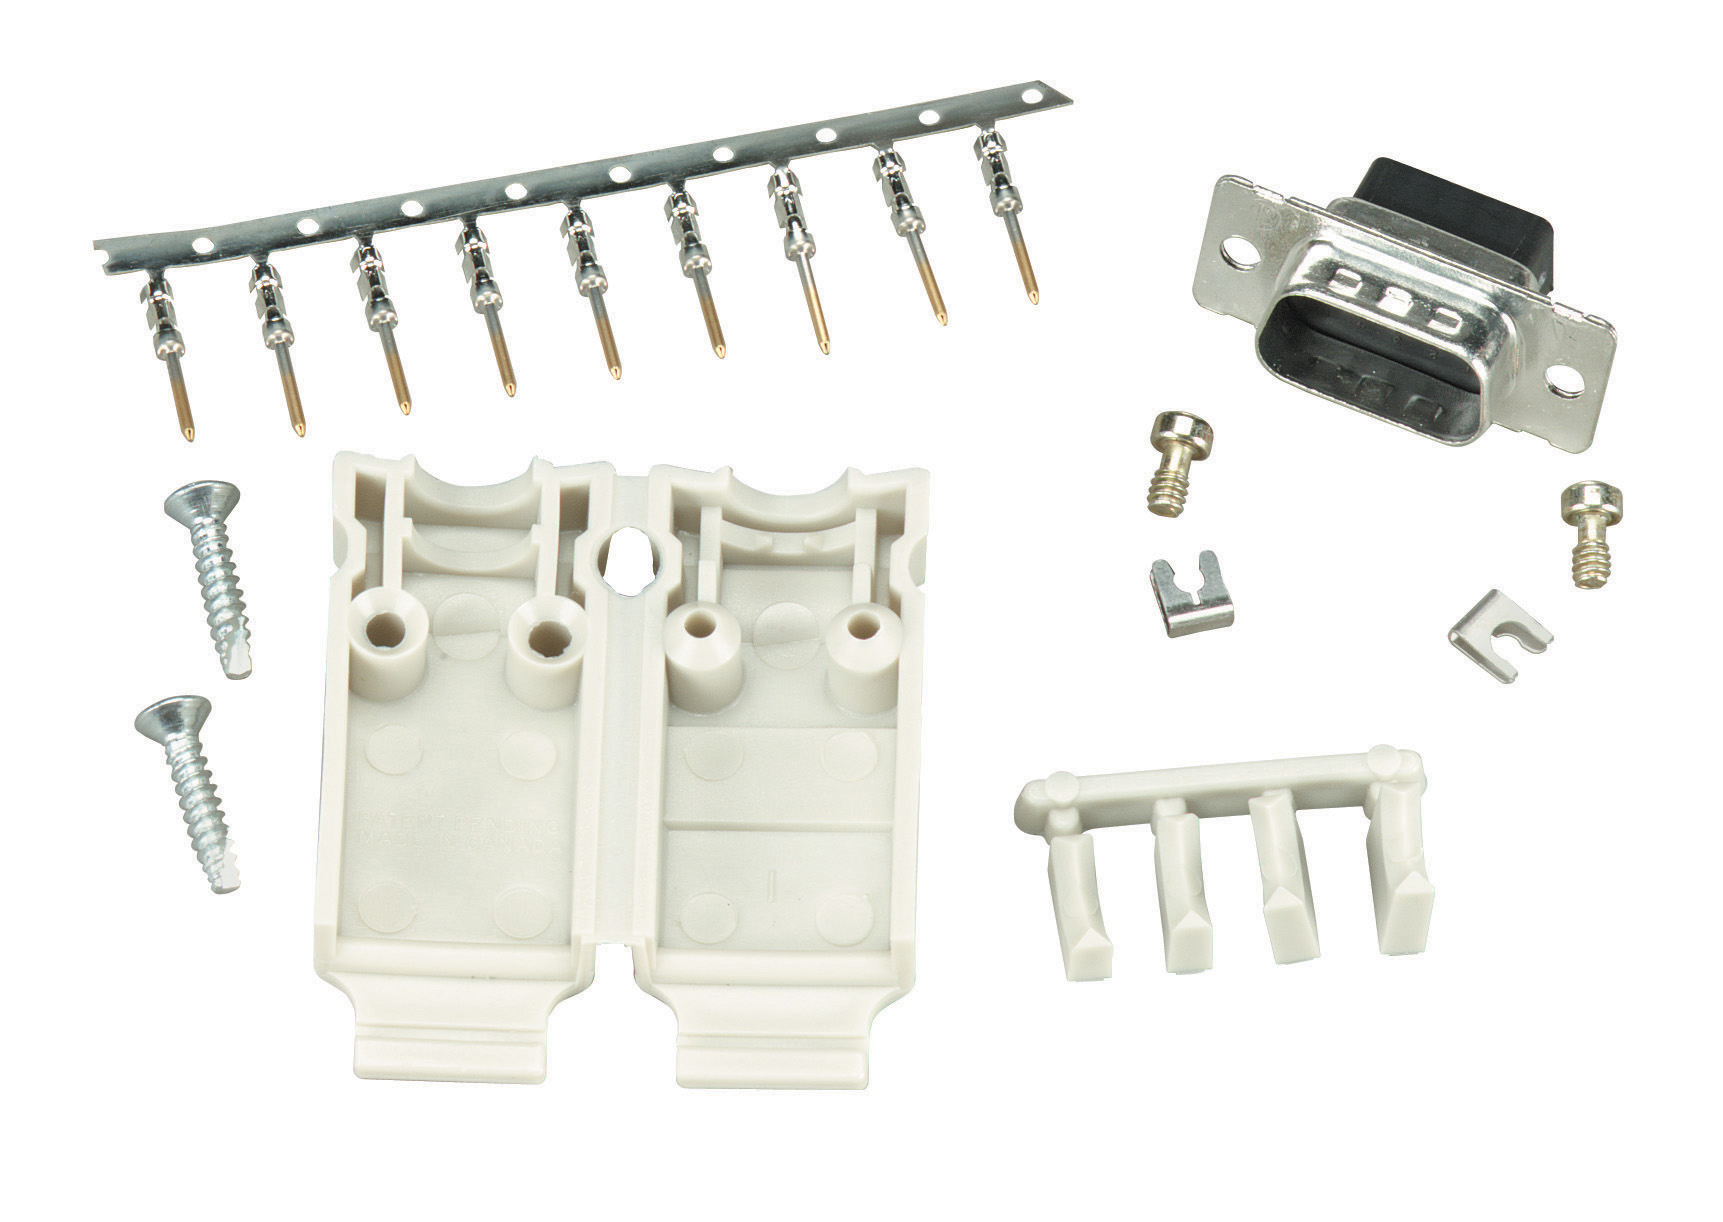 Db male connector assembly kit black box